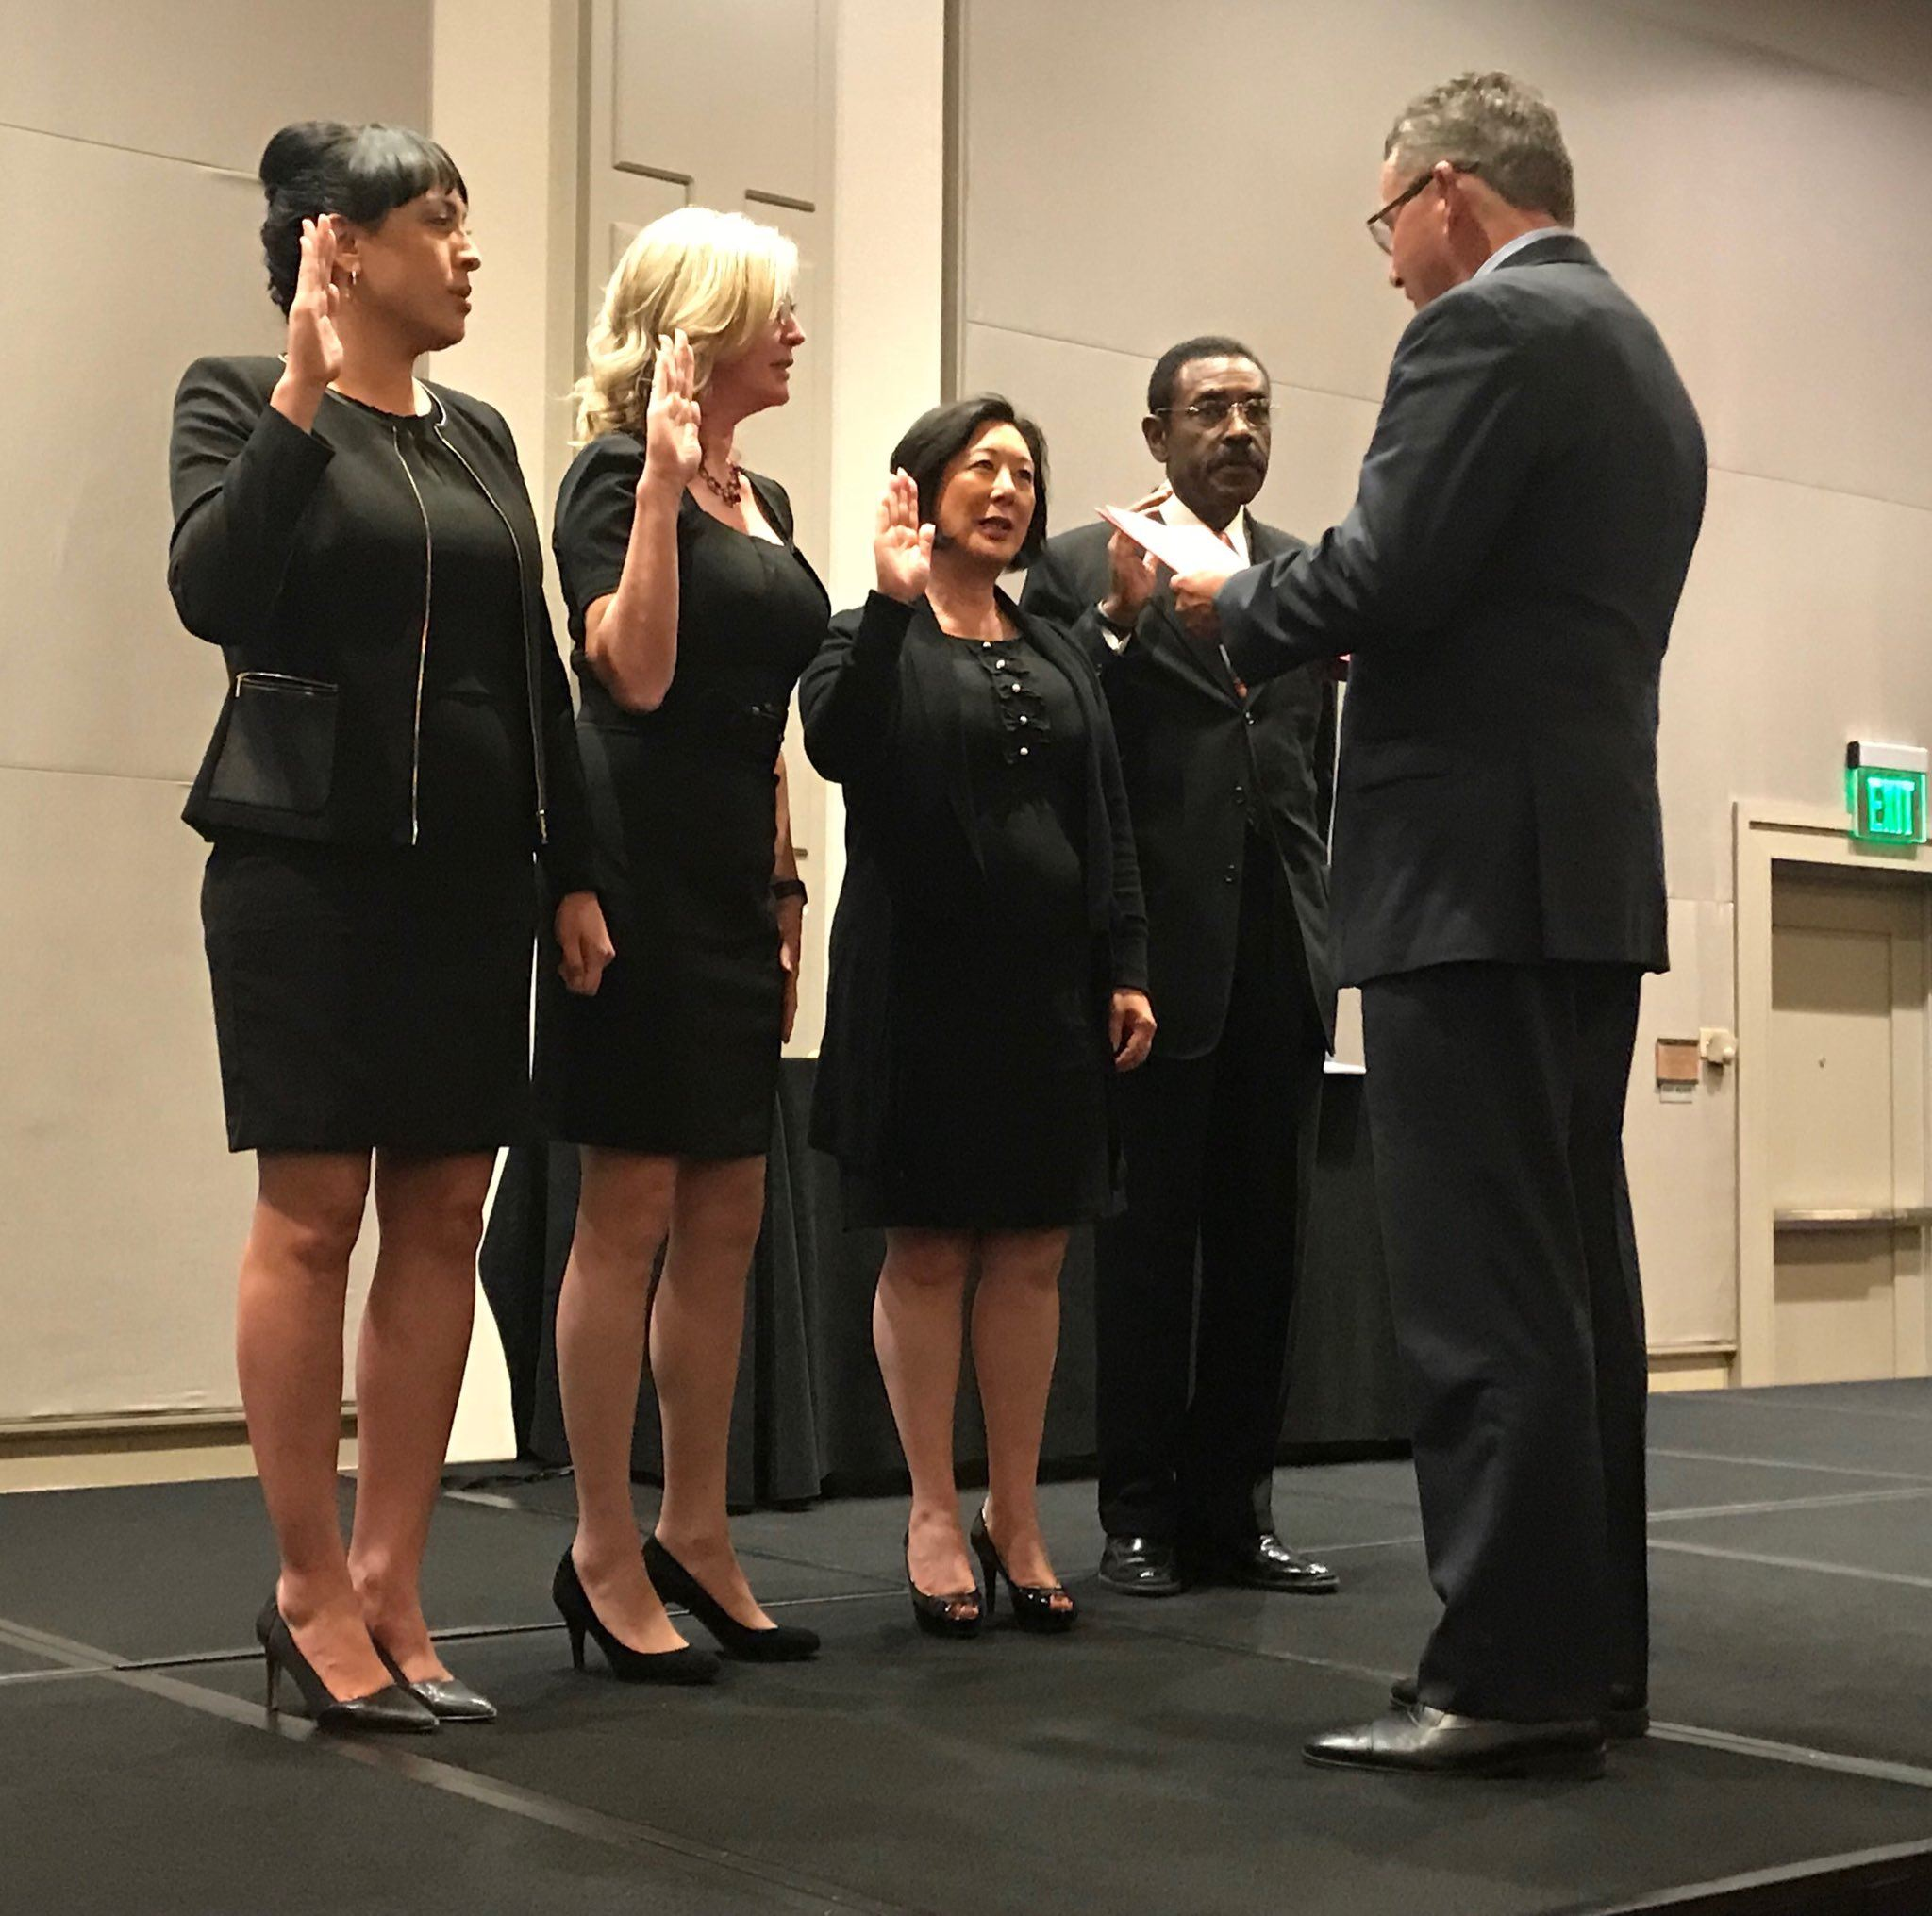 Supervisor Virginia Bass, second from left, is installed as the First Vice President for CSAC on Thu